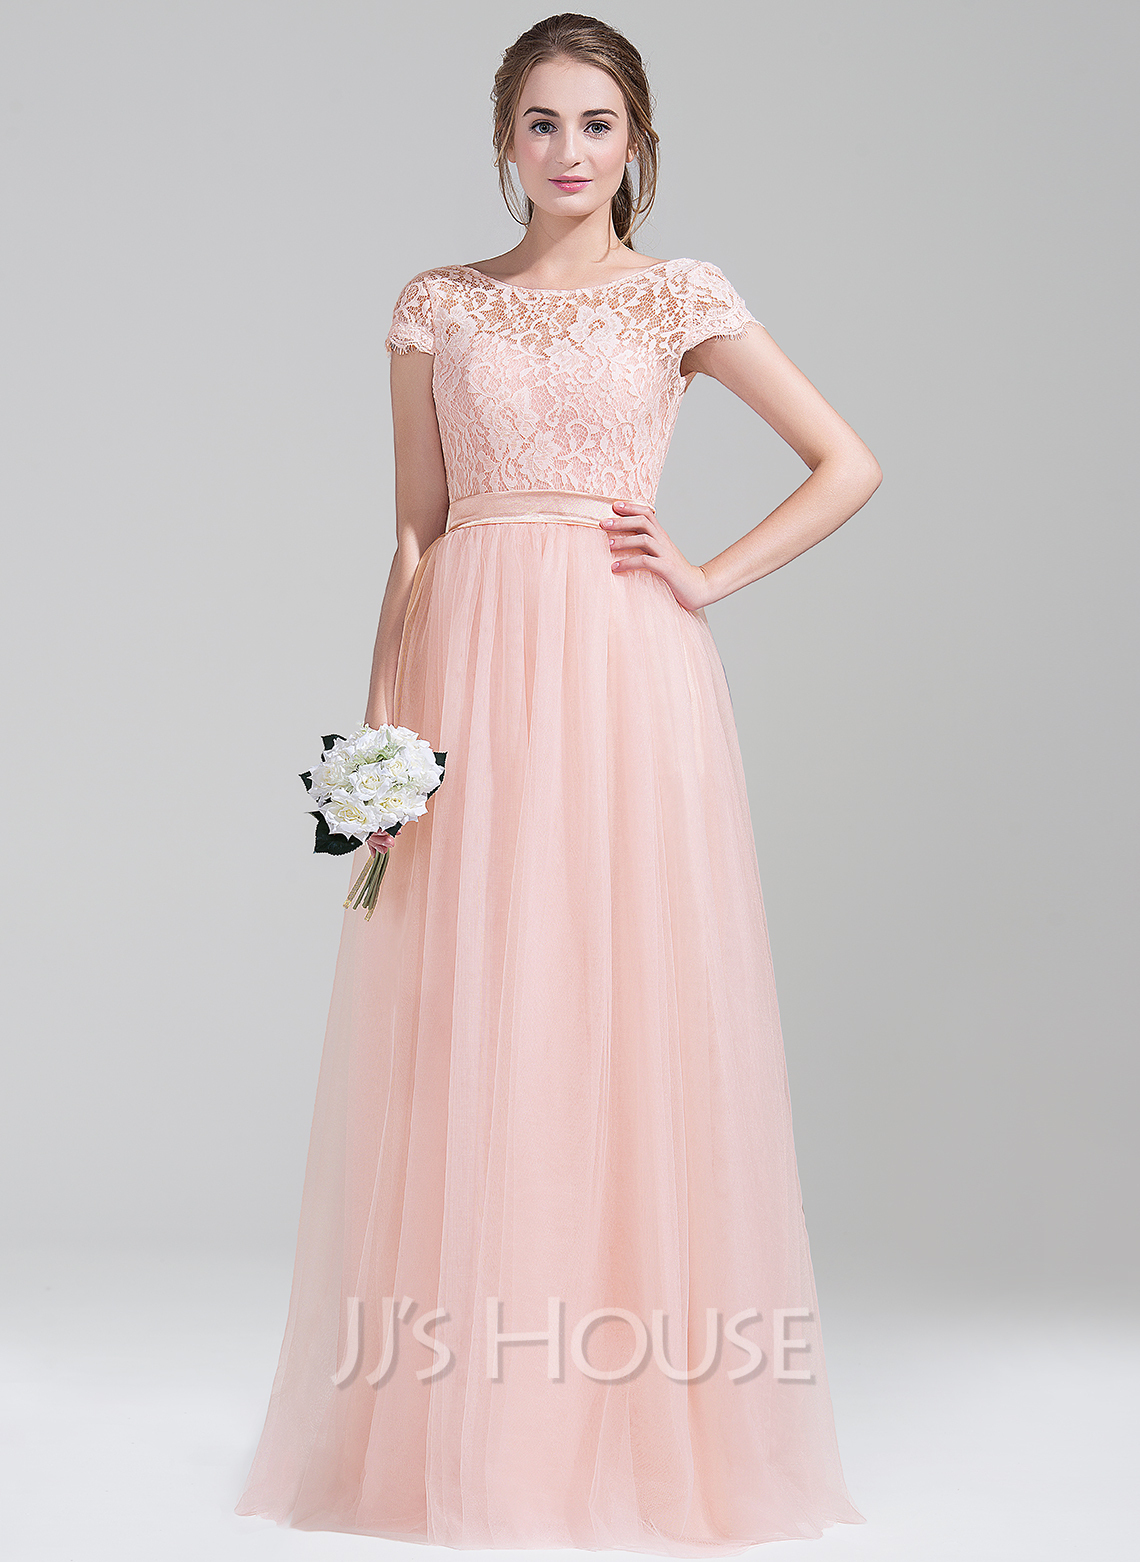 Scoop Neck Floor-Length Tulle Lace Bridesmaid Dress With Bow(s)